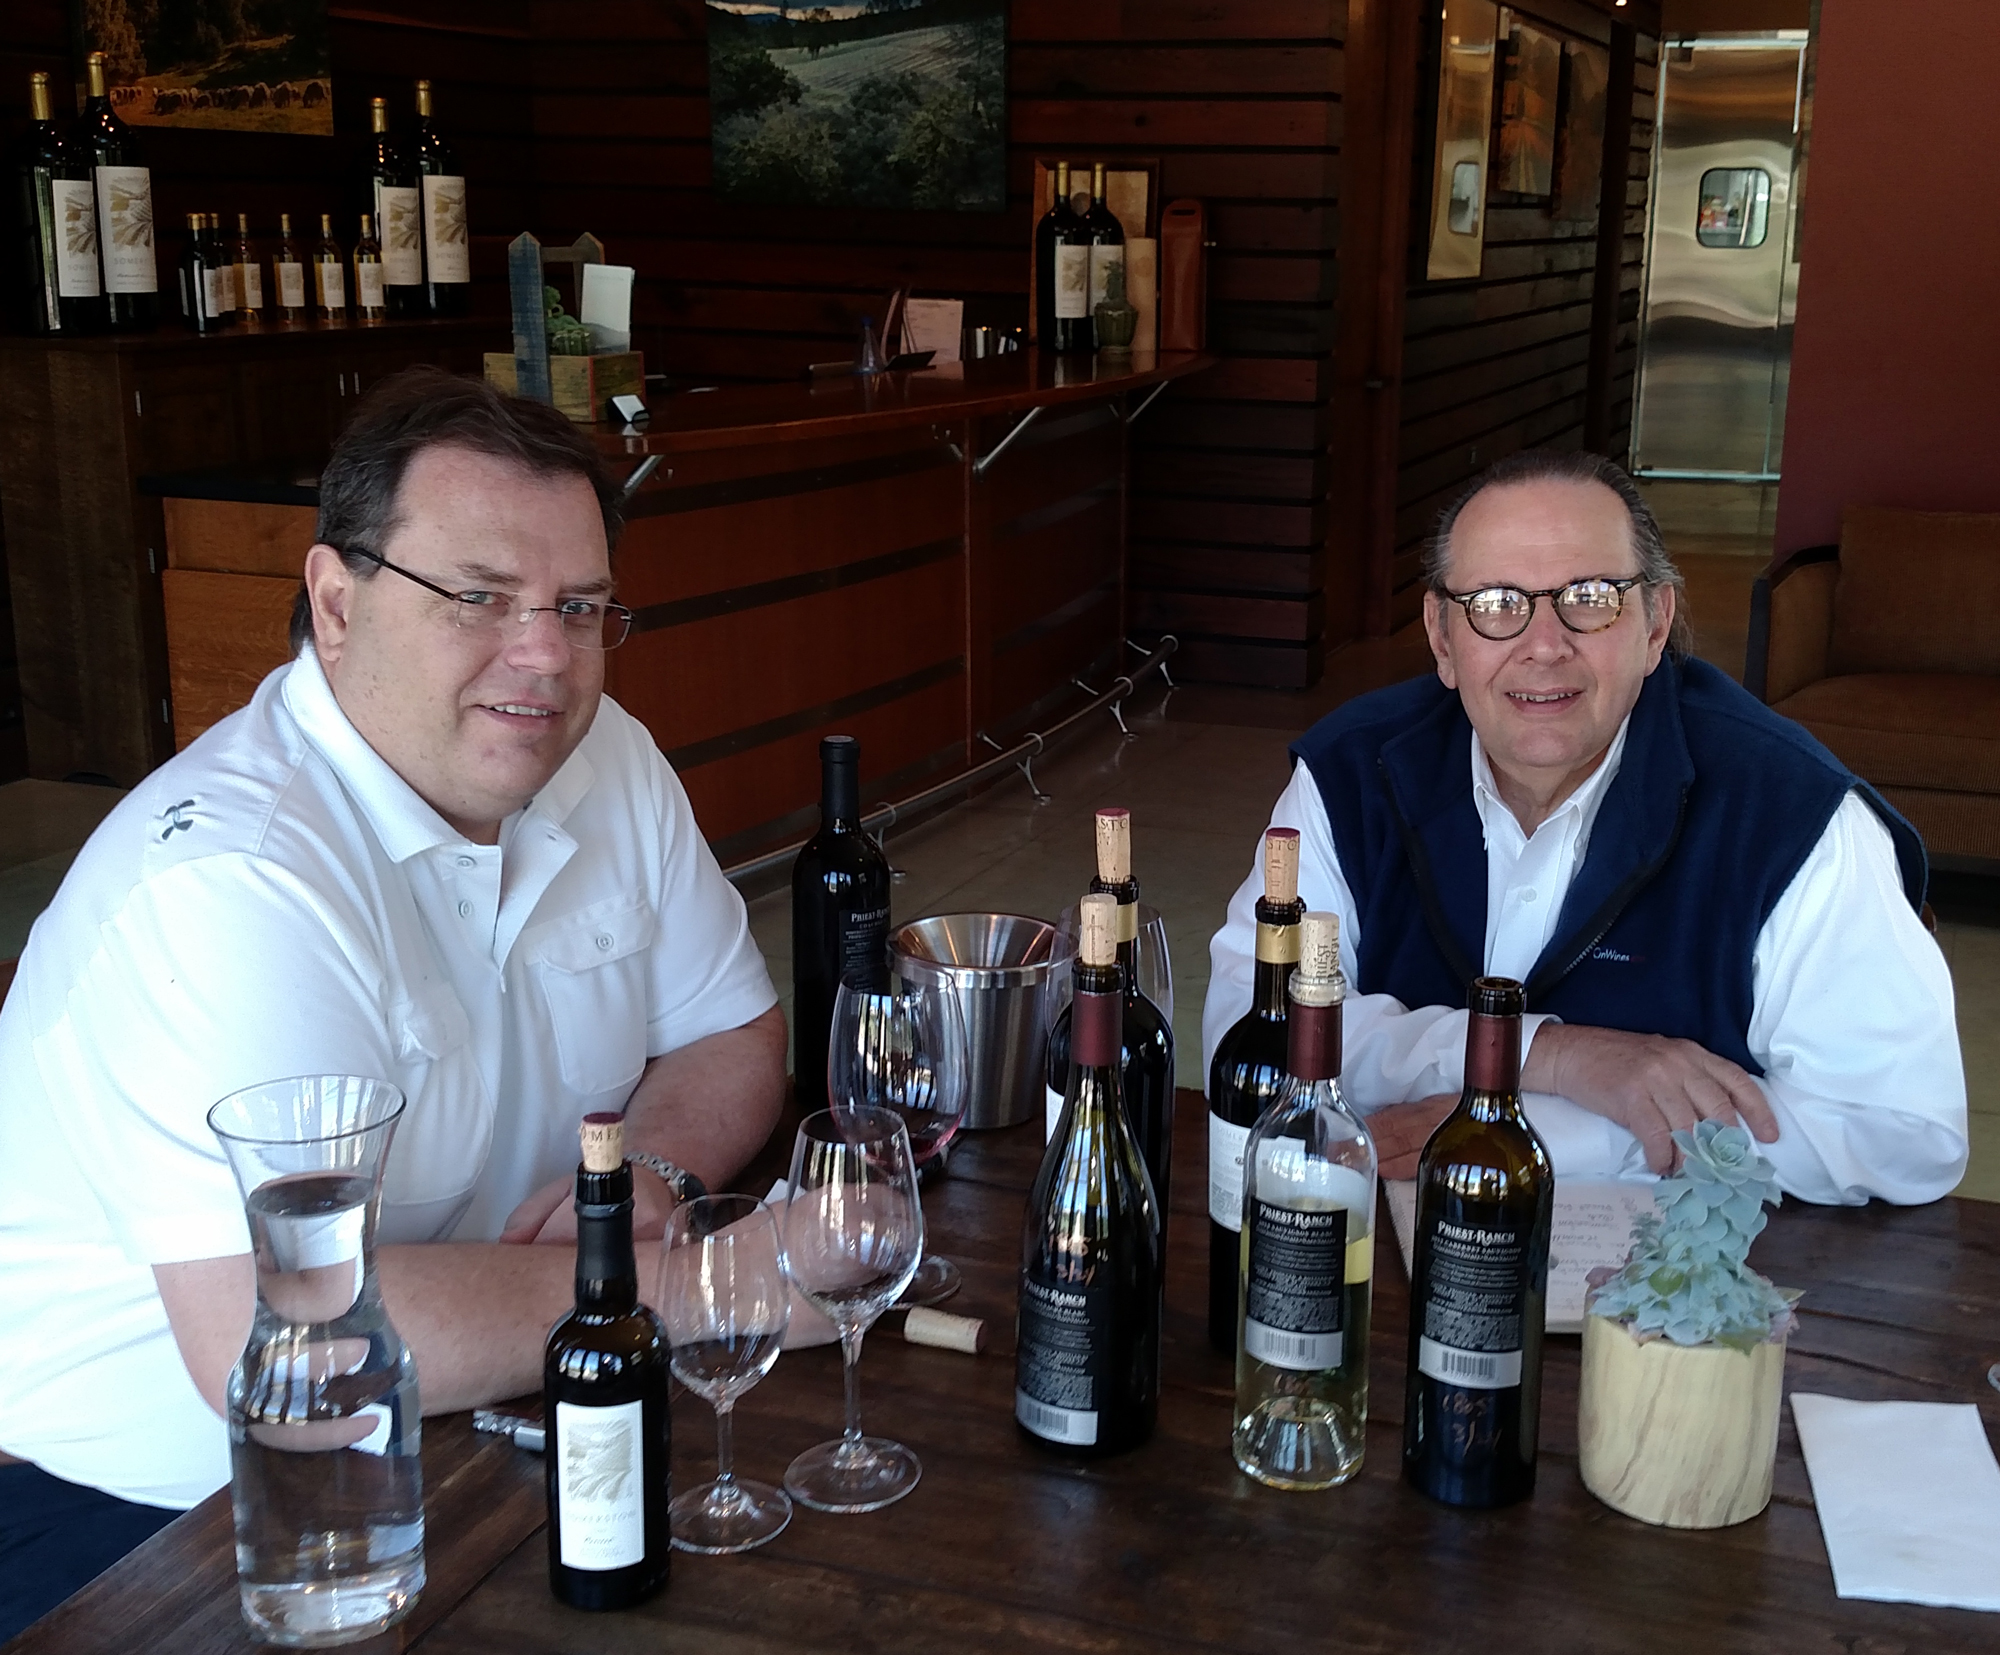 Jack Edwards, Vice President of Sales at Somerston Wines, and Carl tasting Somerston Estate wines.